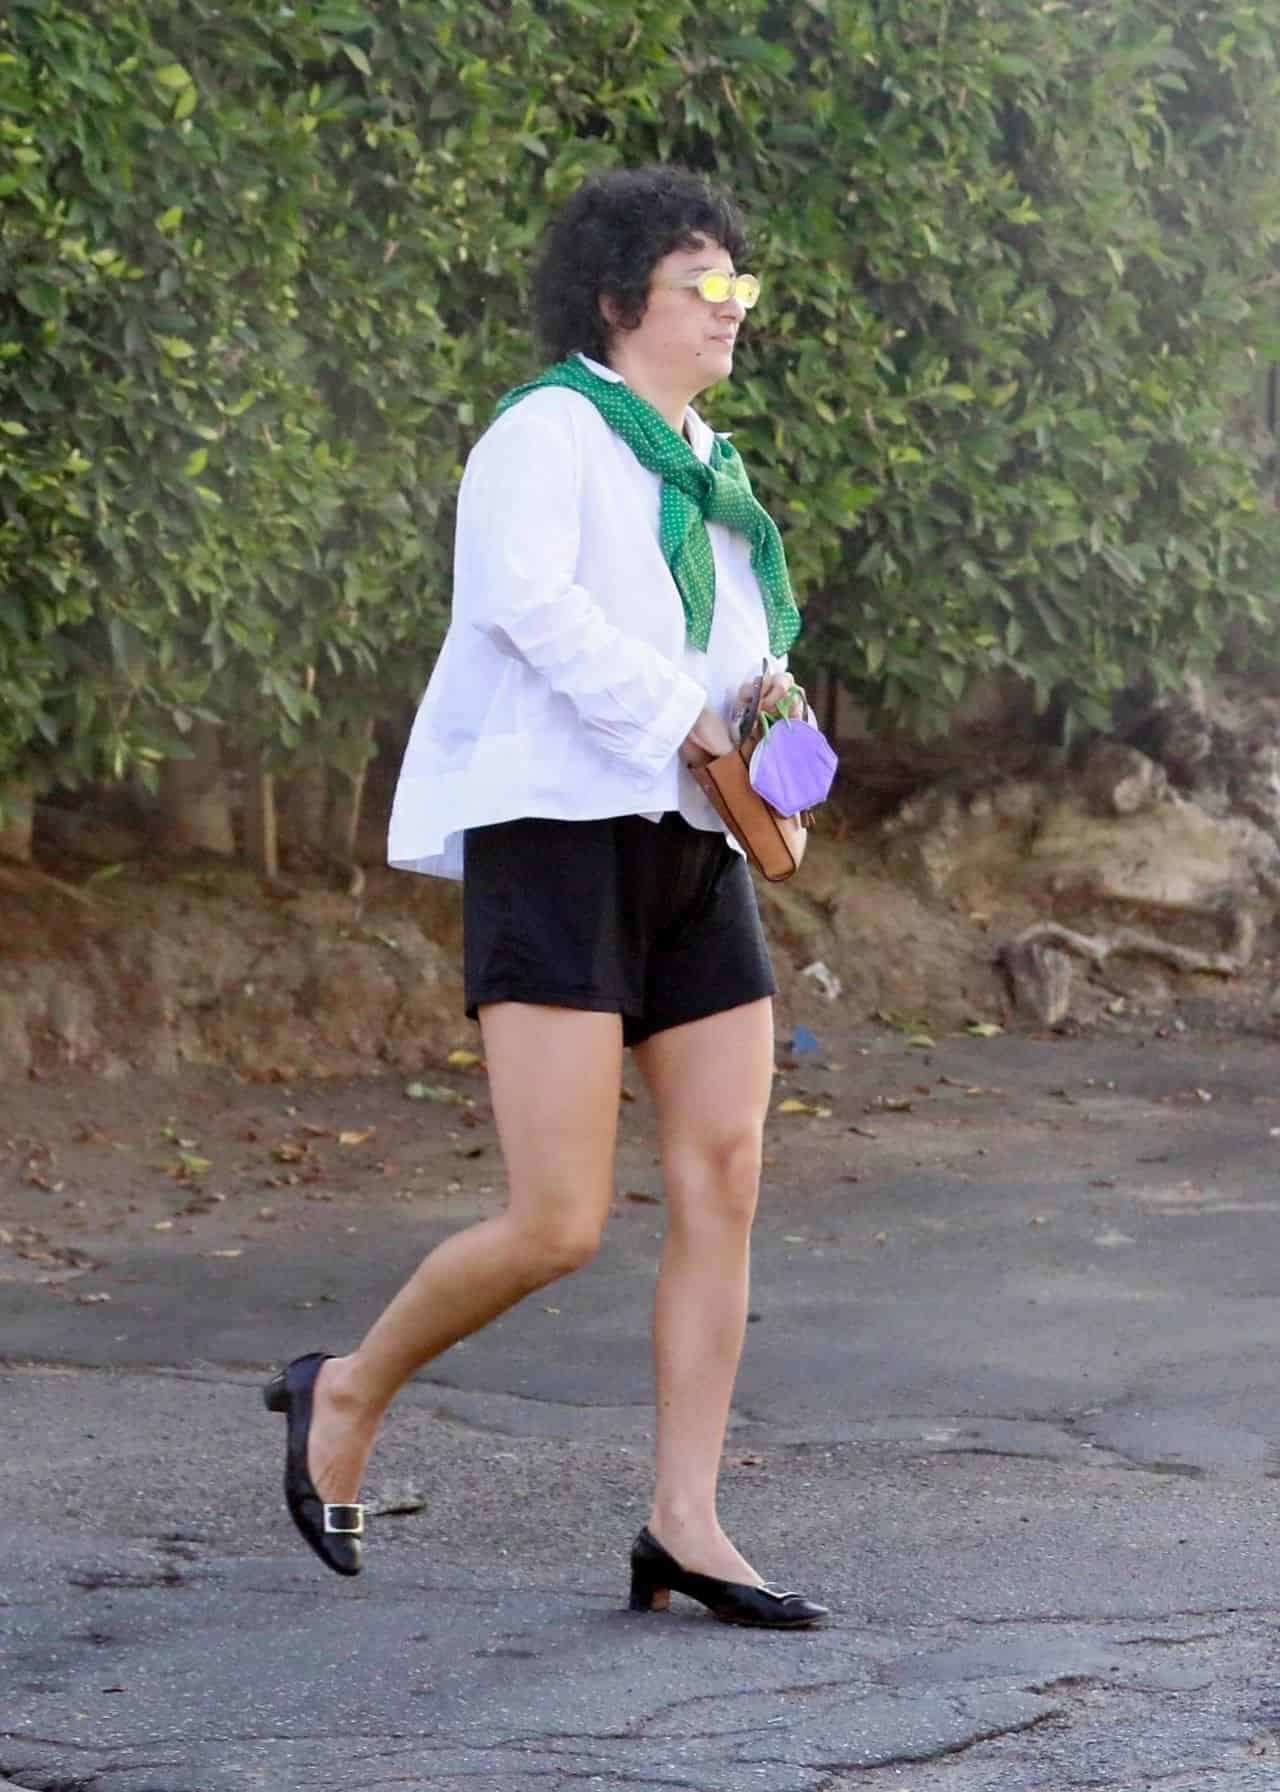 Alia Shawkat in a Casual Monochrome Outfit Out and About in Los Angeles